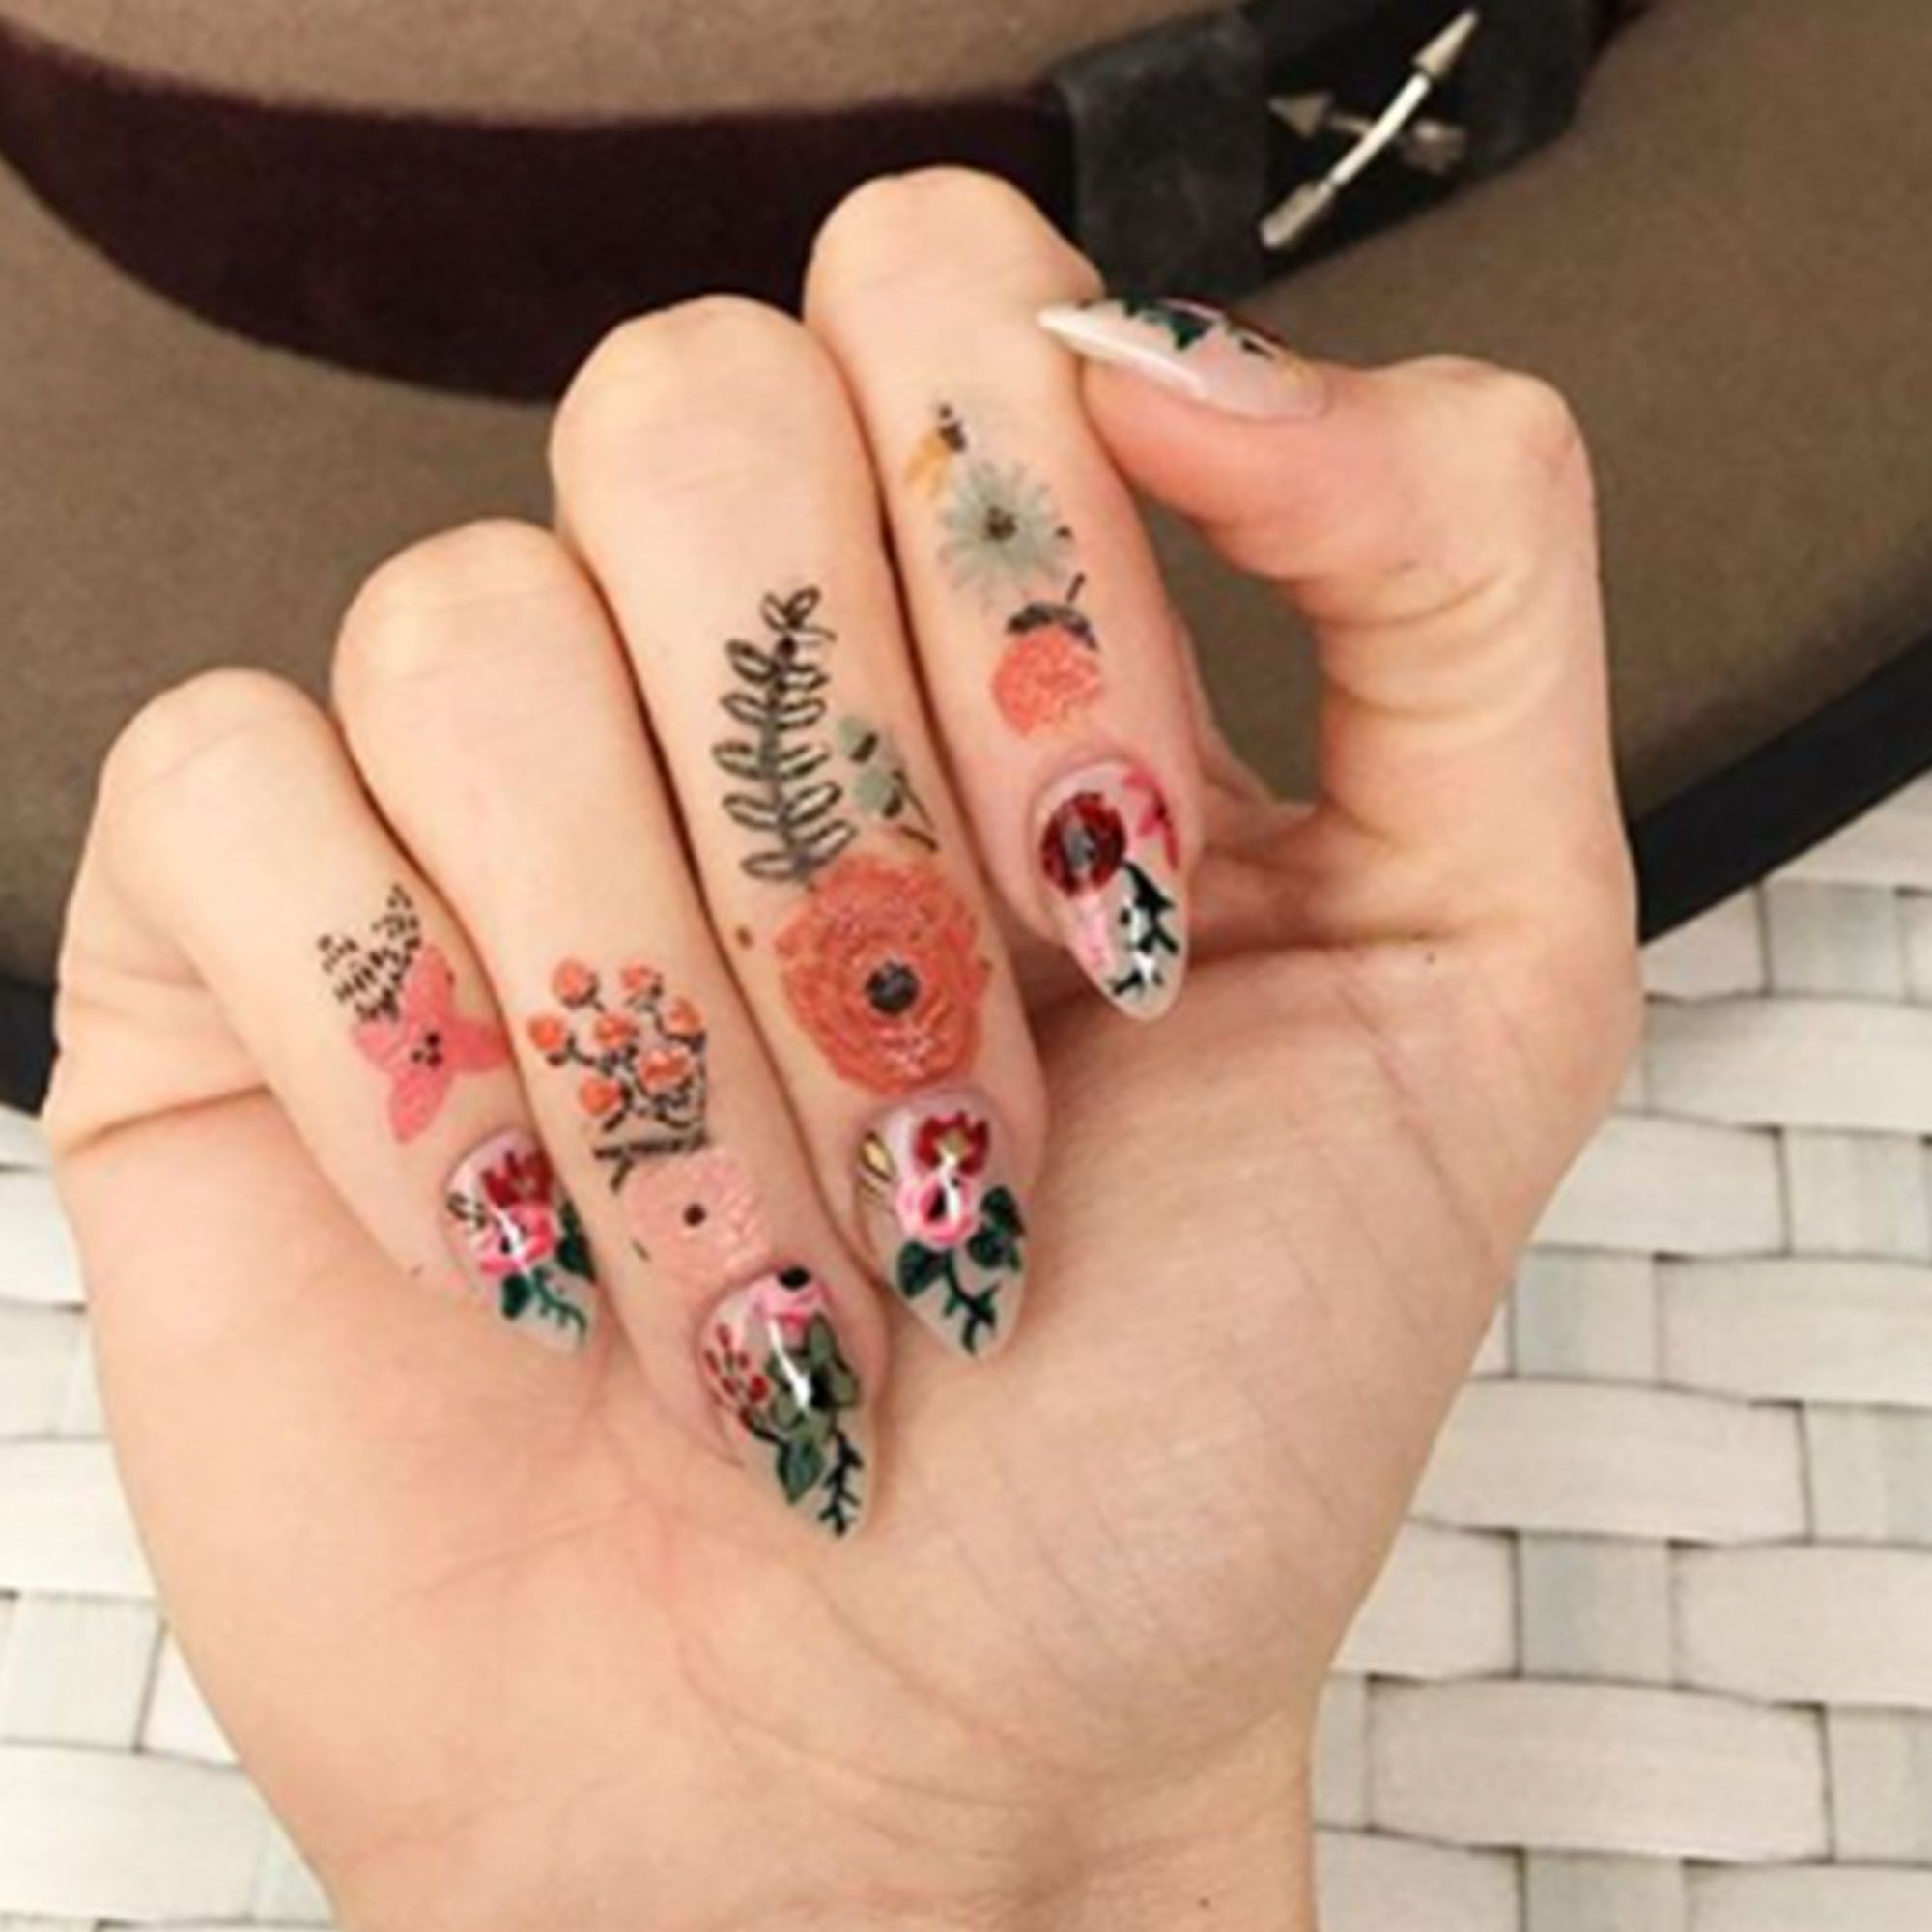 11 Fun Spring Floral Nail Designs - The Best Flower Designs for your Nails